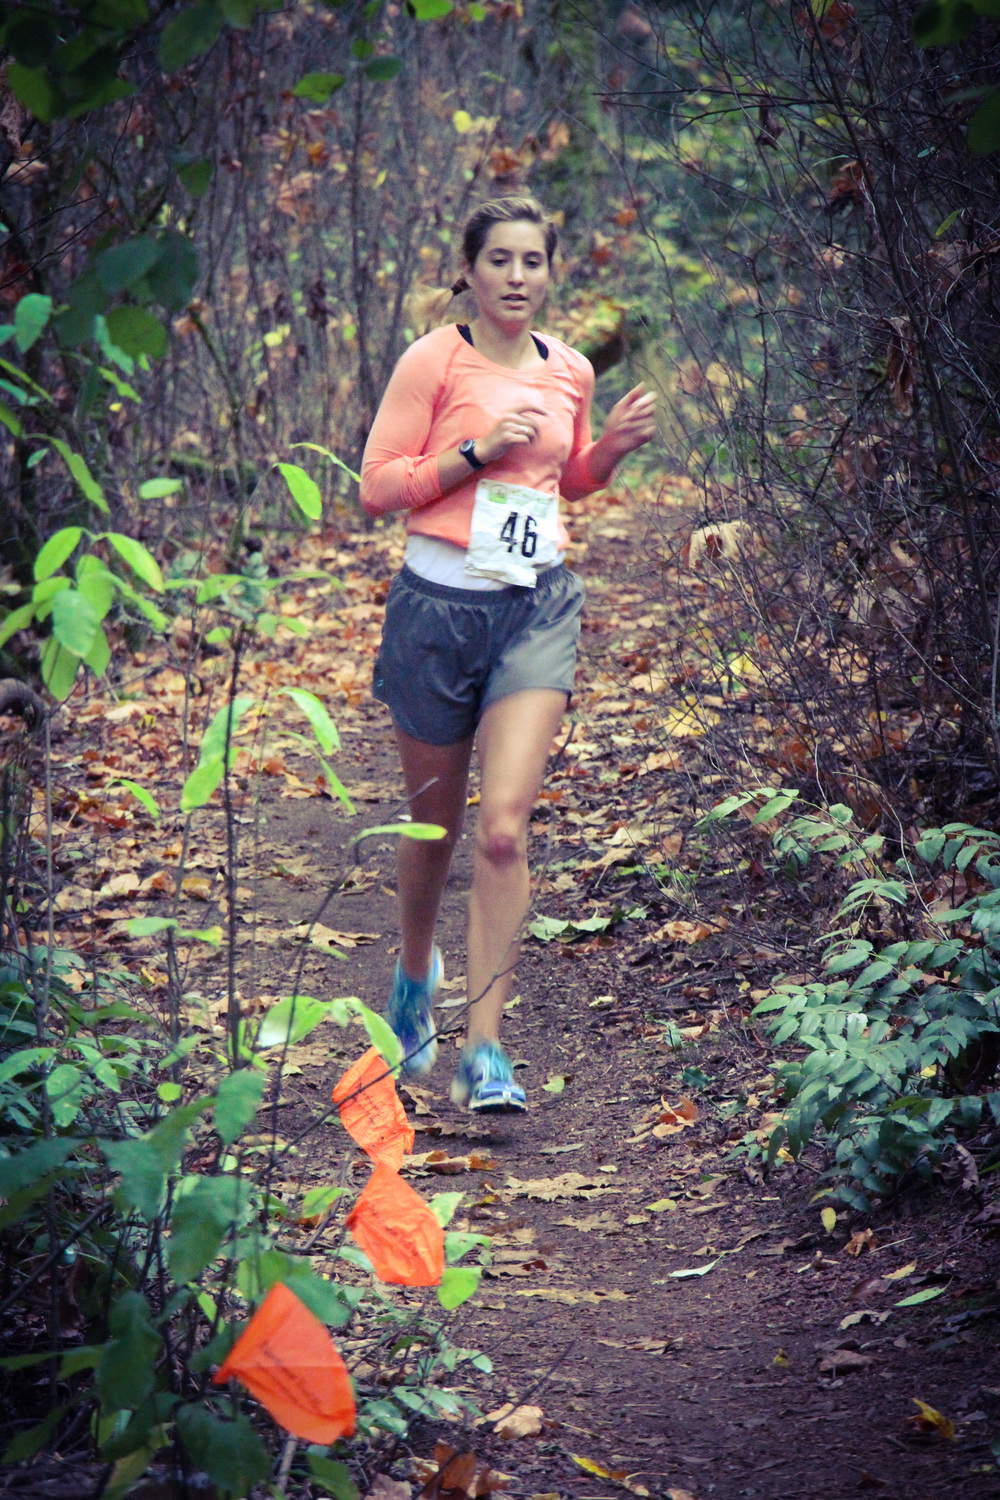 Making moves at the St. Edwards Harvest Half near Seattle earlier this month...